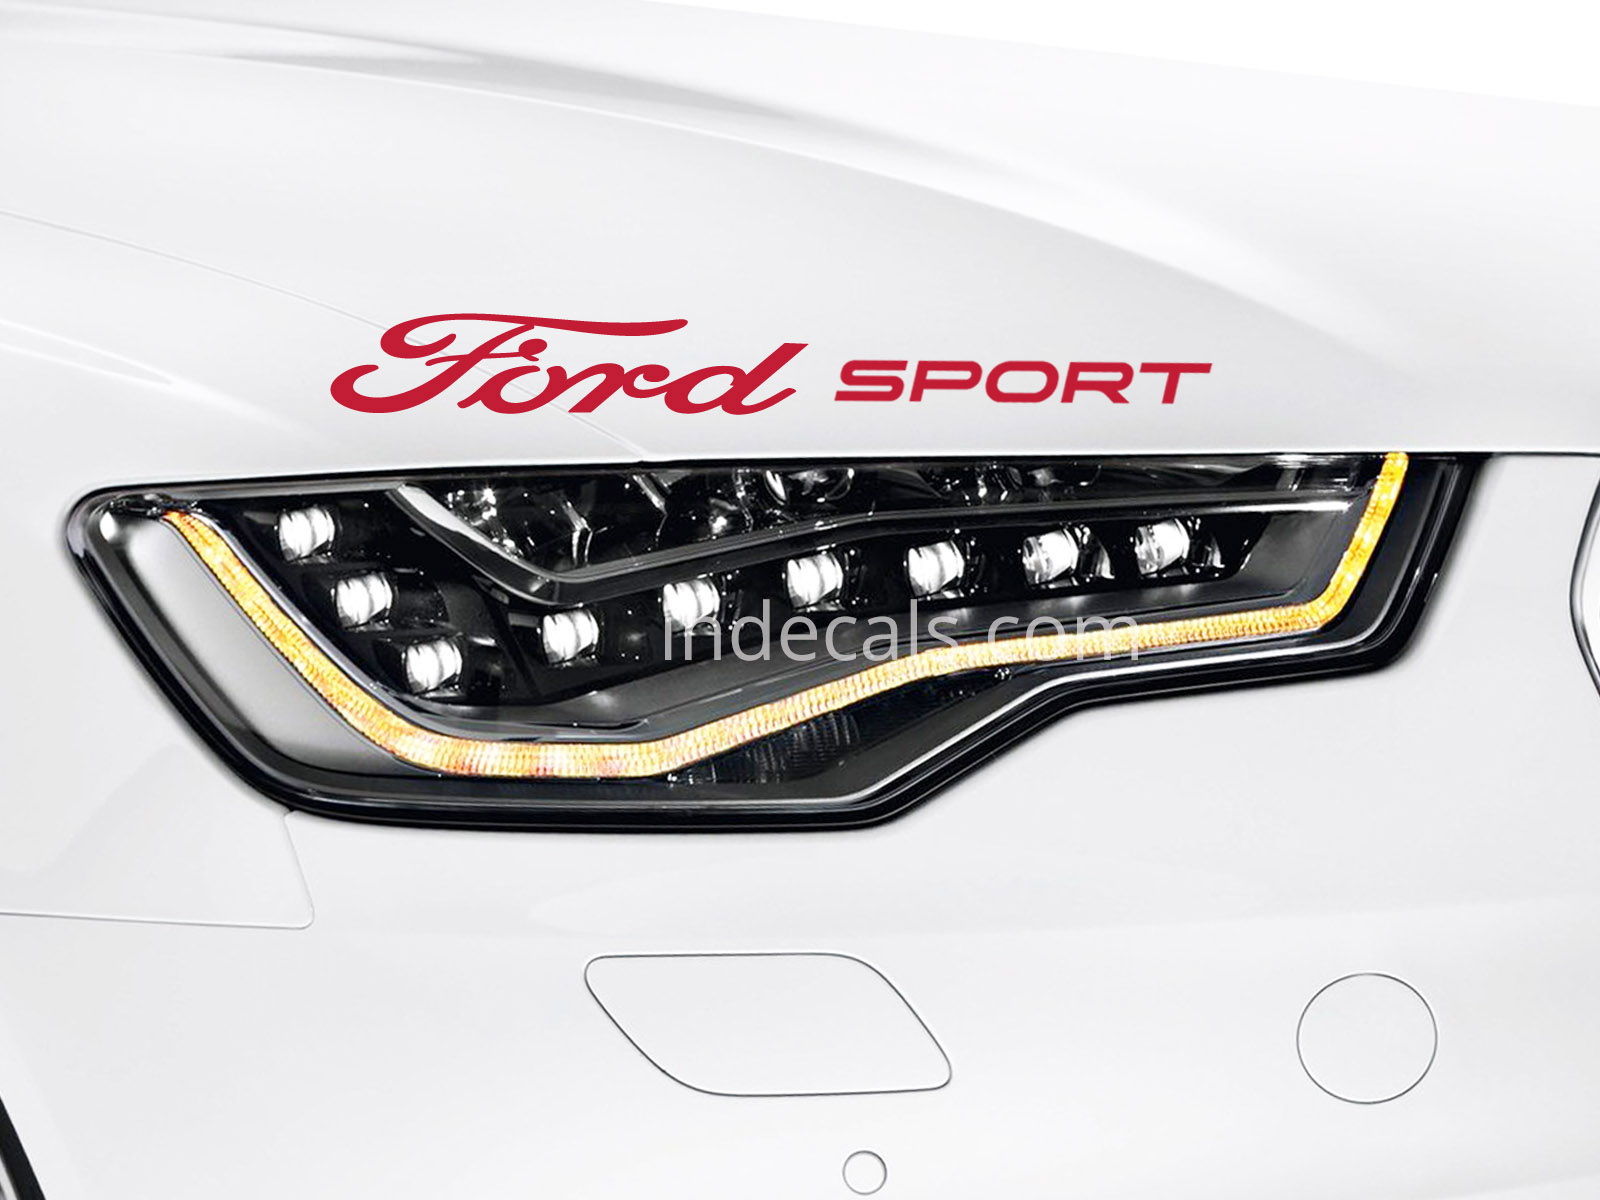 1 x ford sport sticker red